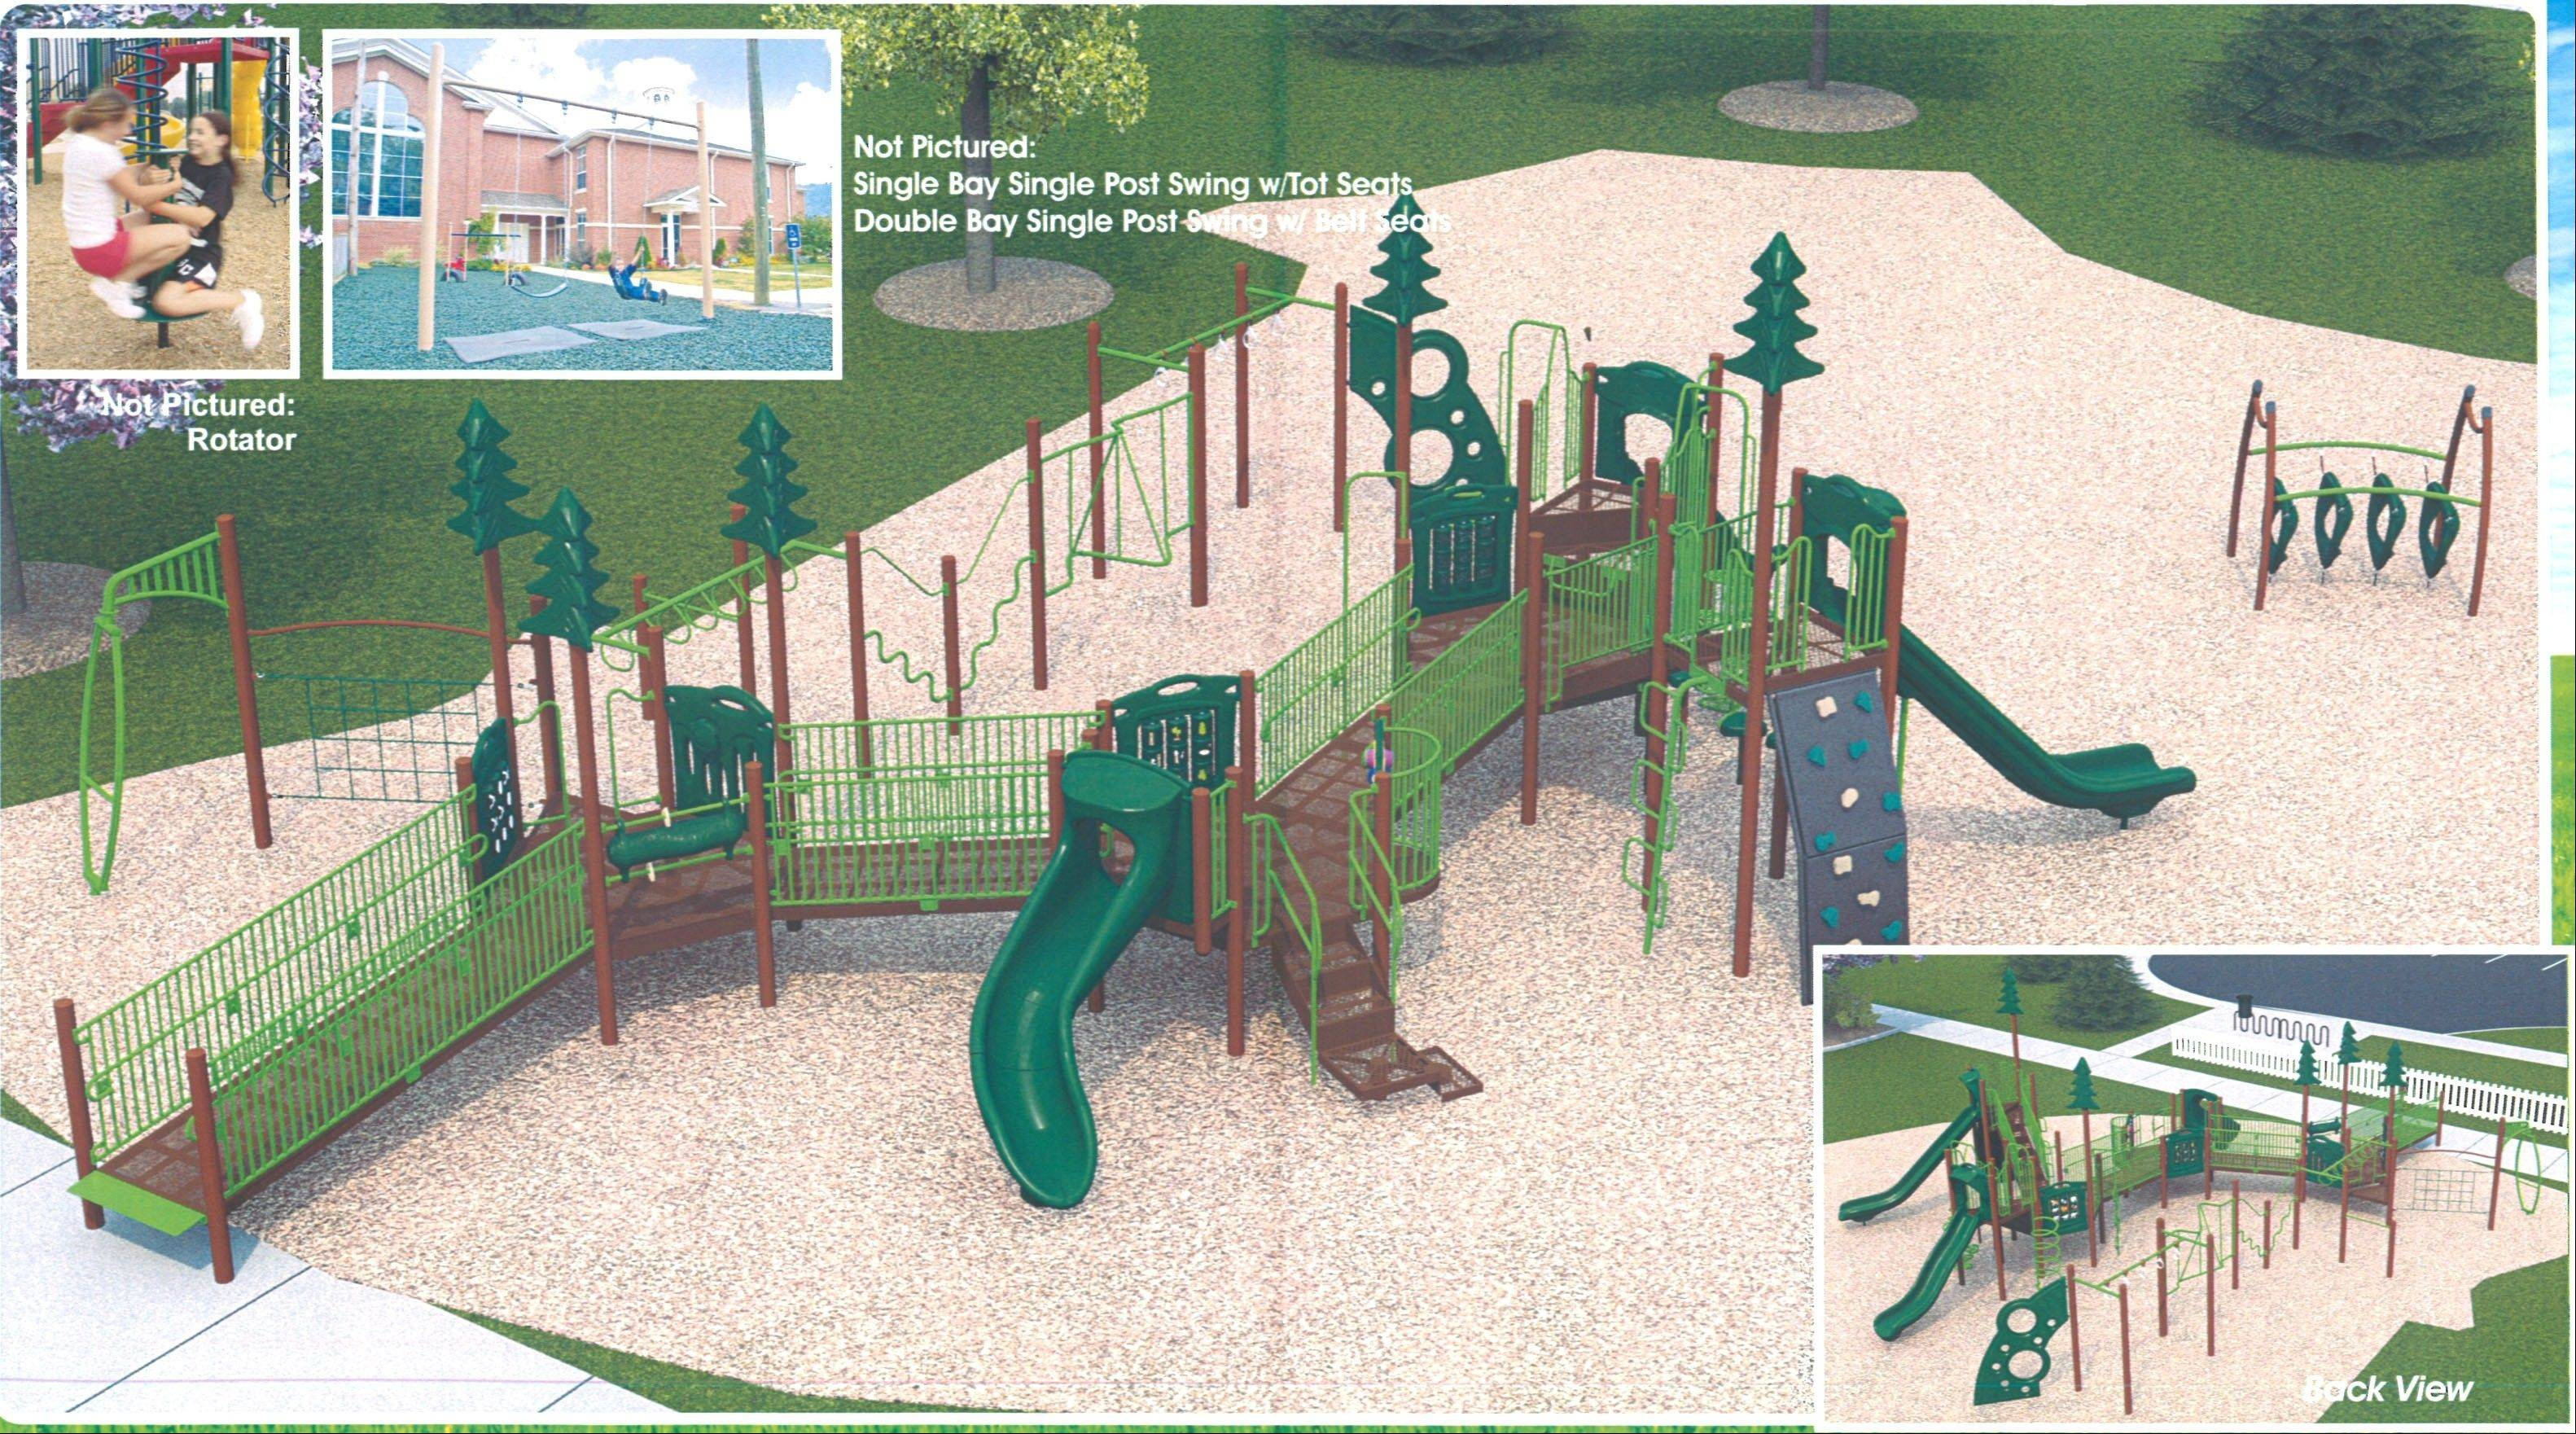 This is a rendering of the new playground that will be installed at High Point Park, 1704 Glenlake Road, Hoffman Estates. The current wood playground is more than a decade old and deteriorating.